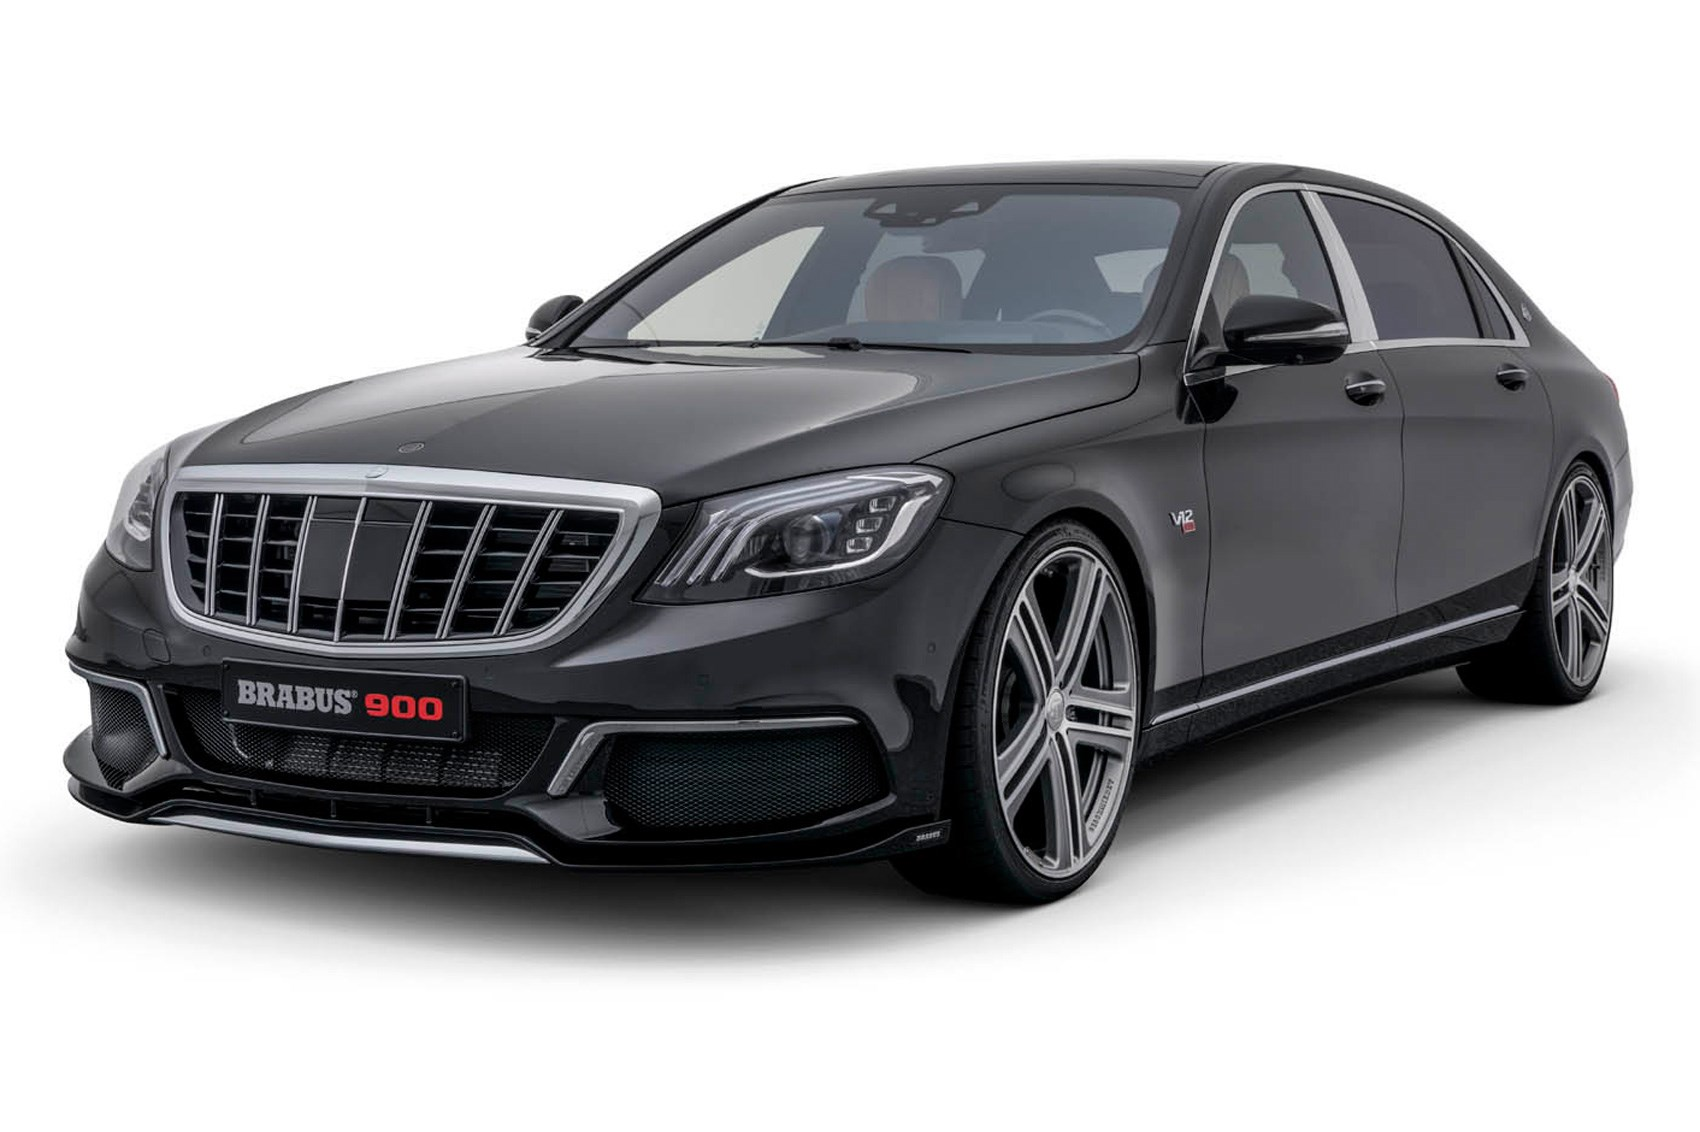 Demonic limo mercedes s class facelift gets 888bhp brabus for Mercedes benz g class brabus